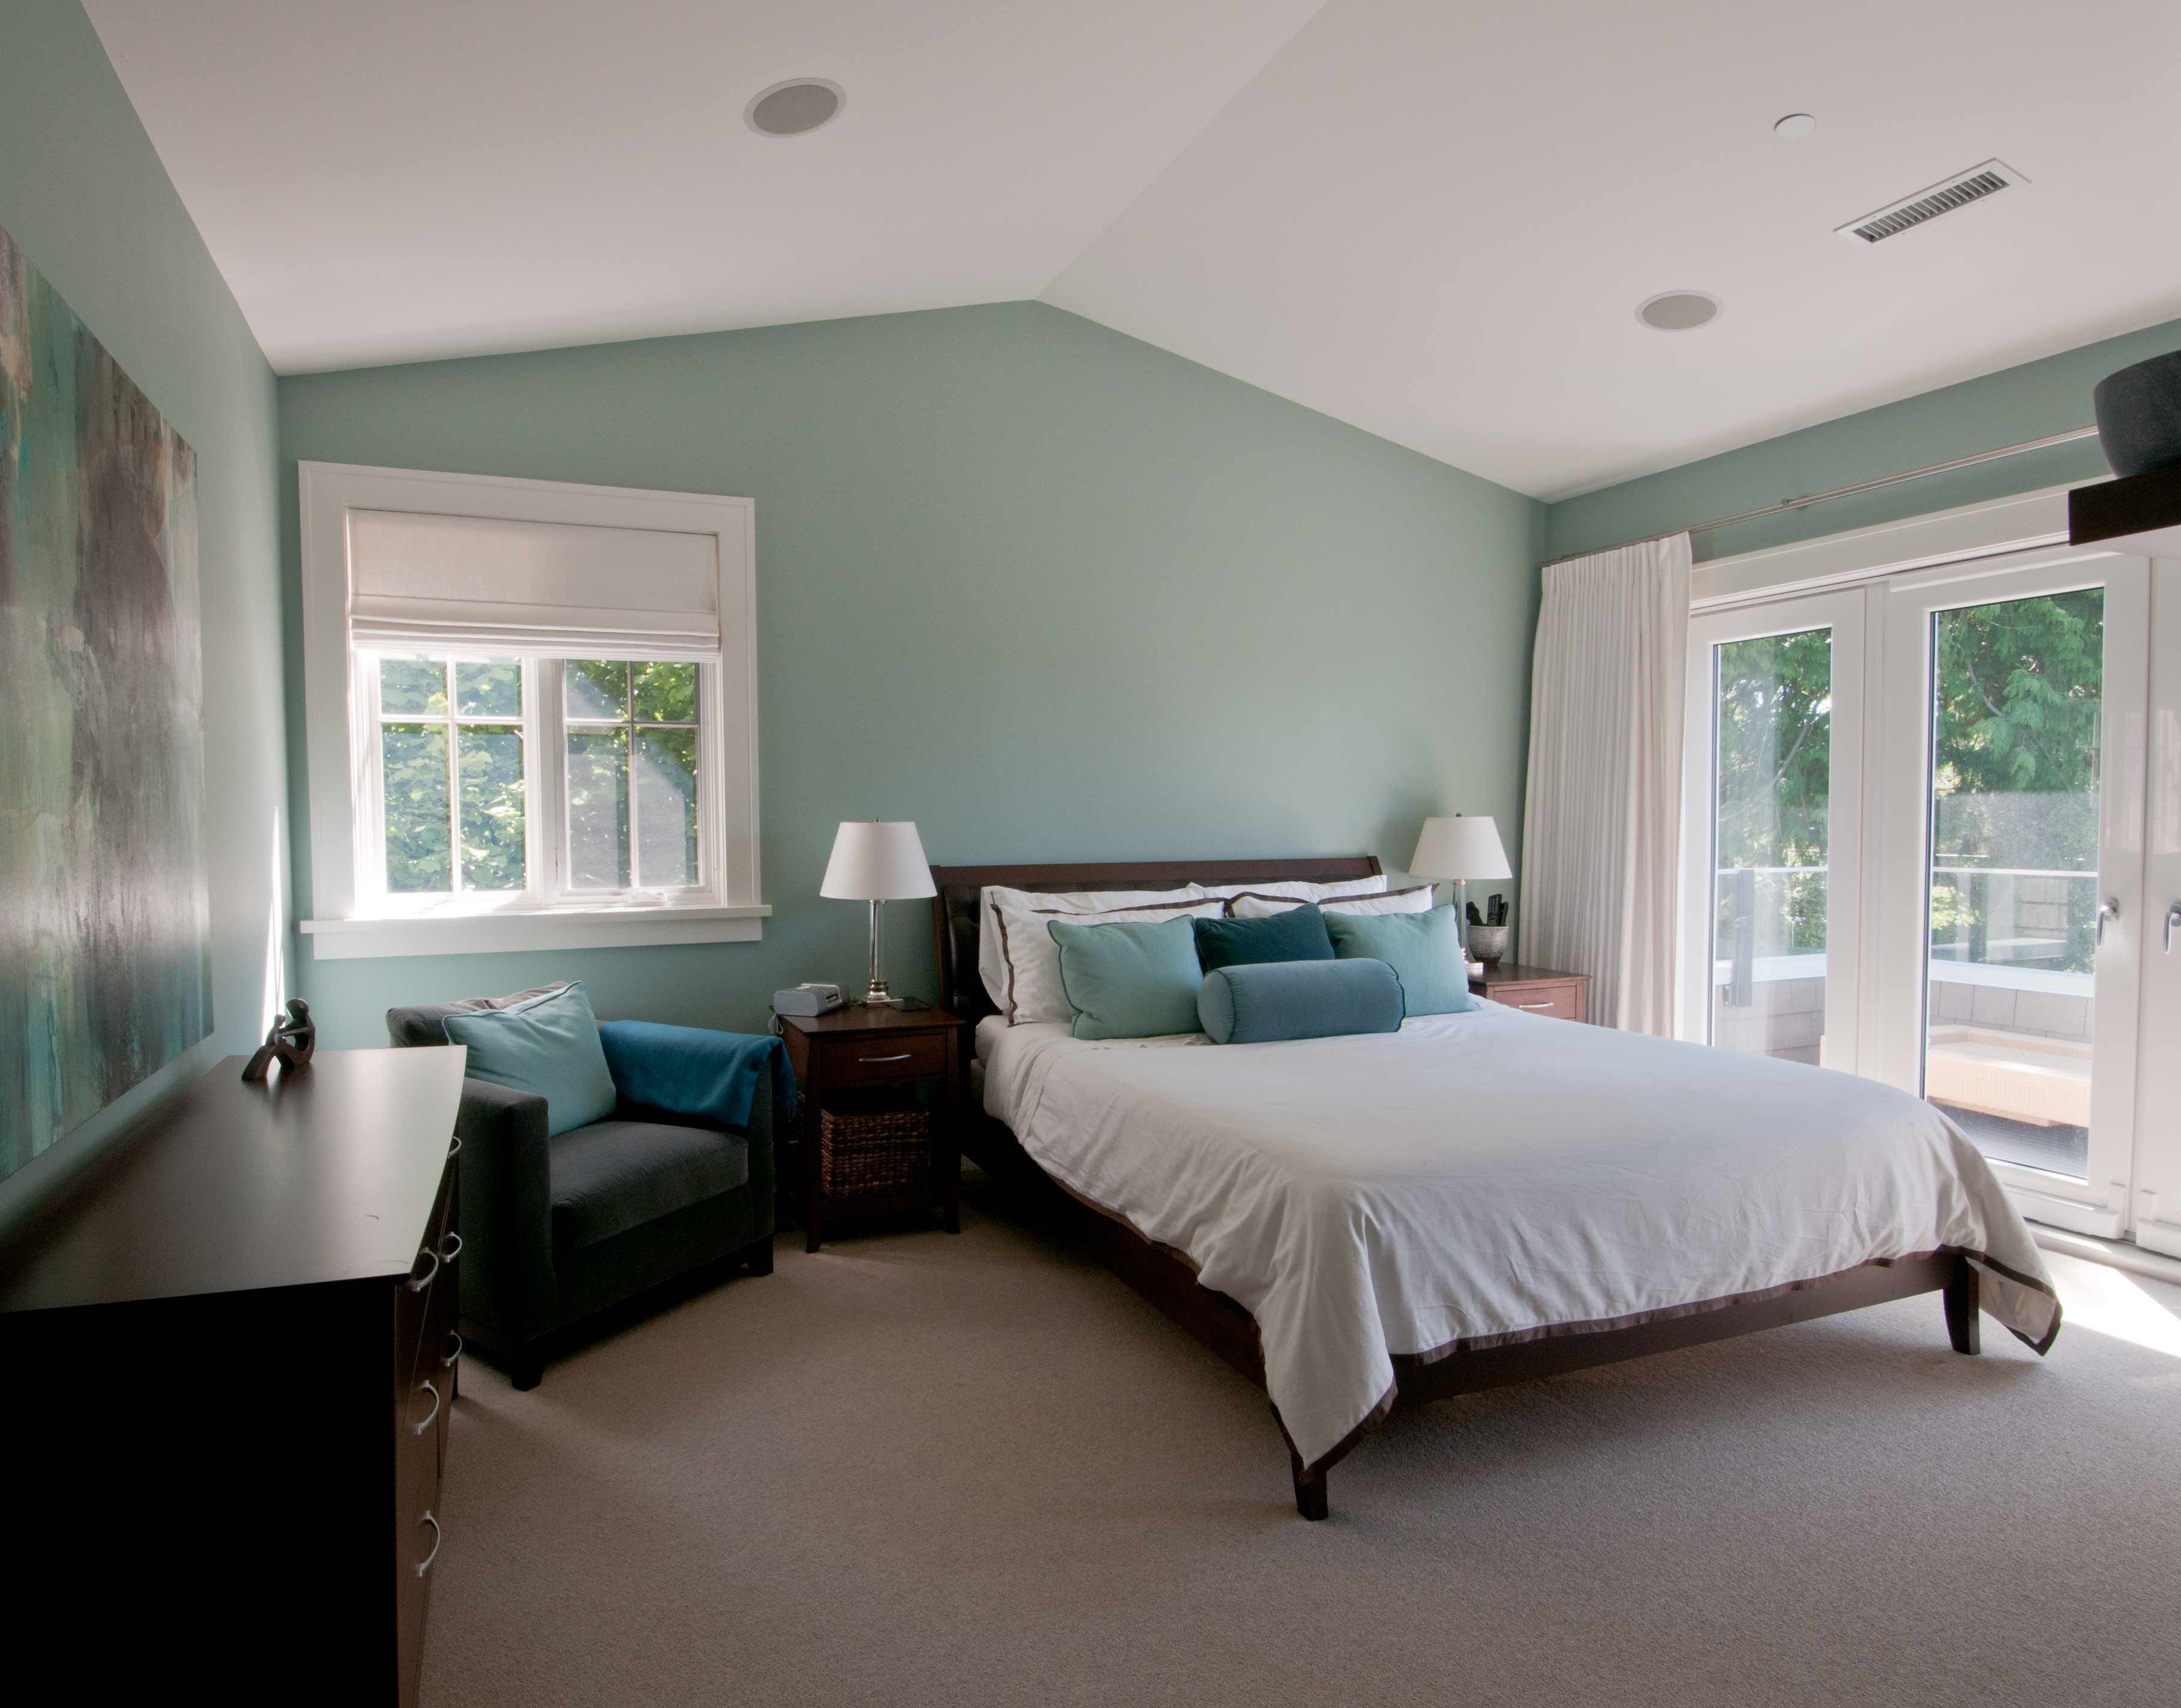 gallery in 2019 for the home blue bedroom walls bedroom colors blue bedroom. Black Bedroom Furniture Sets. Home Design Ideas